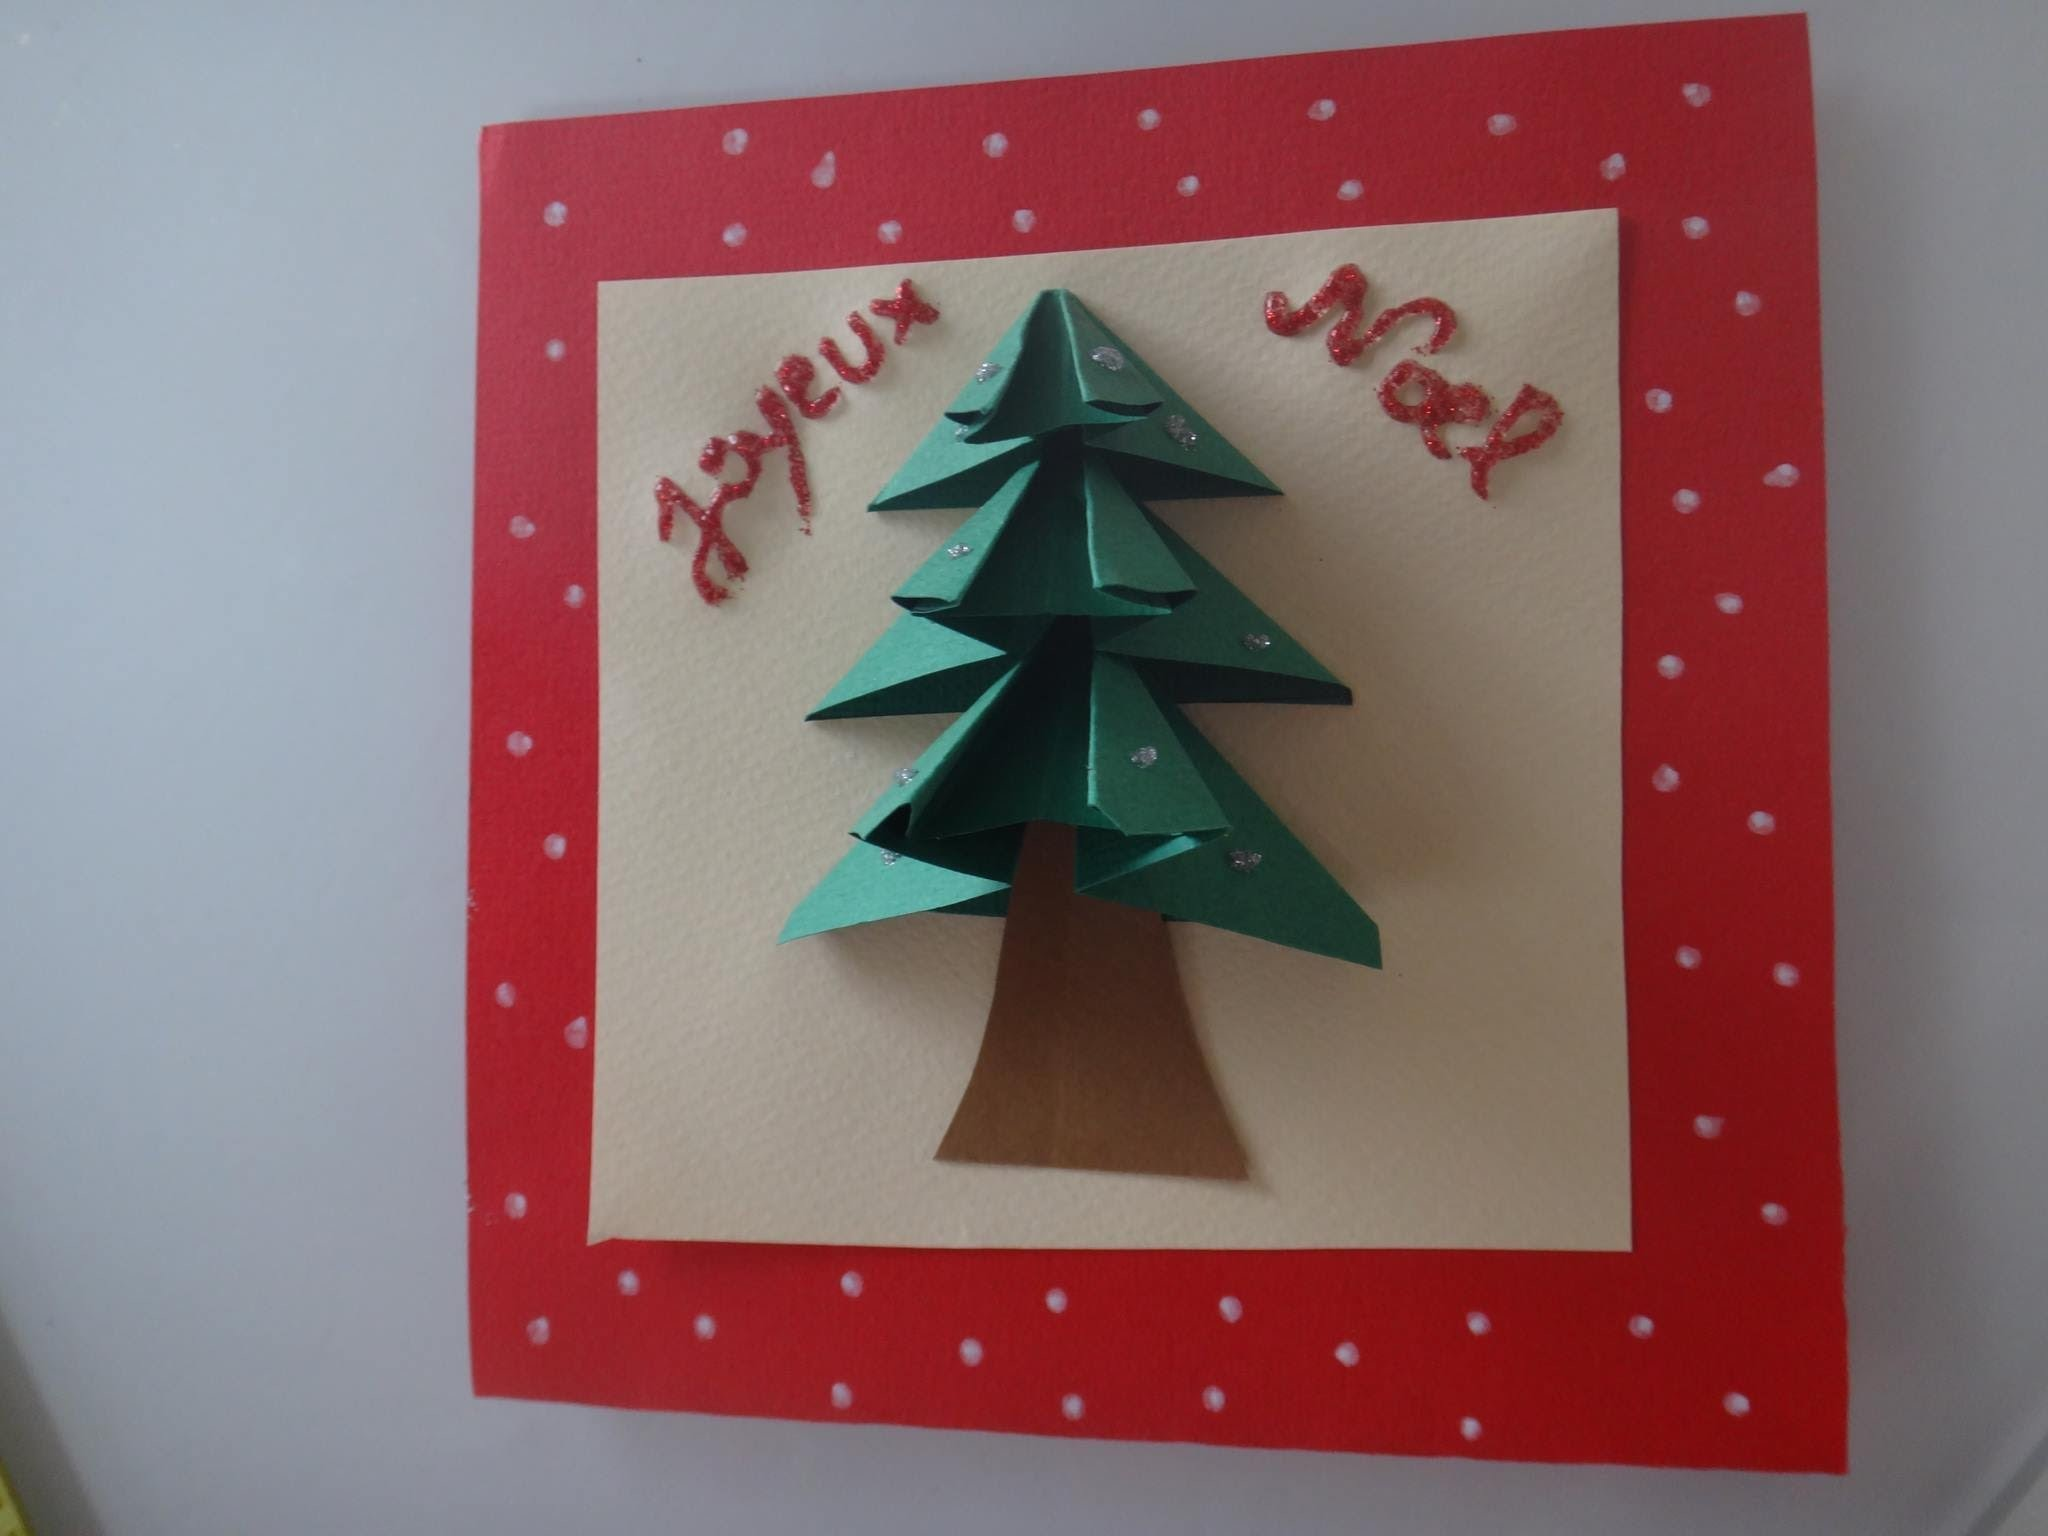 Festifoly Diy Tuto Carte De Voeux Noël 3d My Crafts And Diy Projects